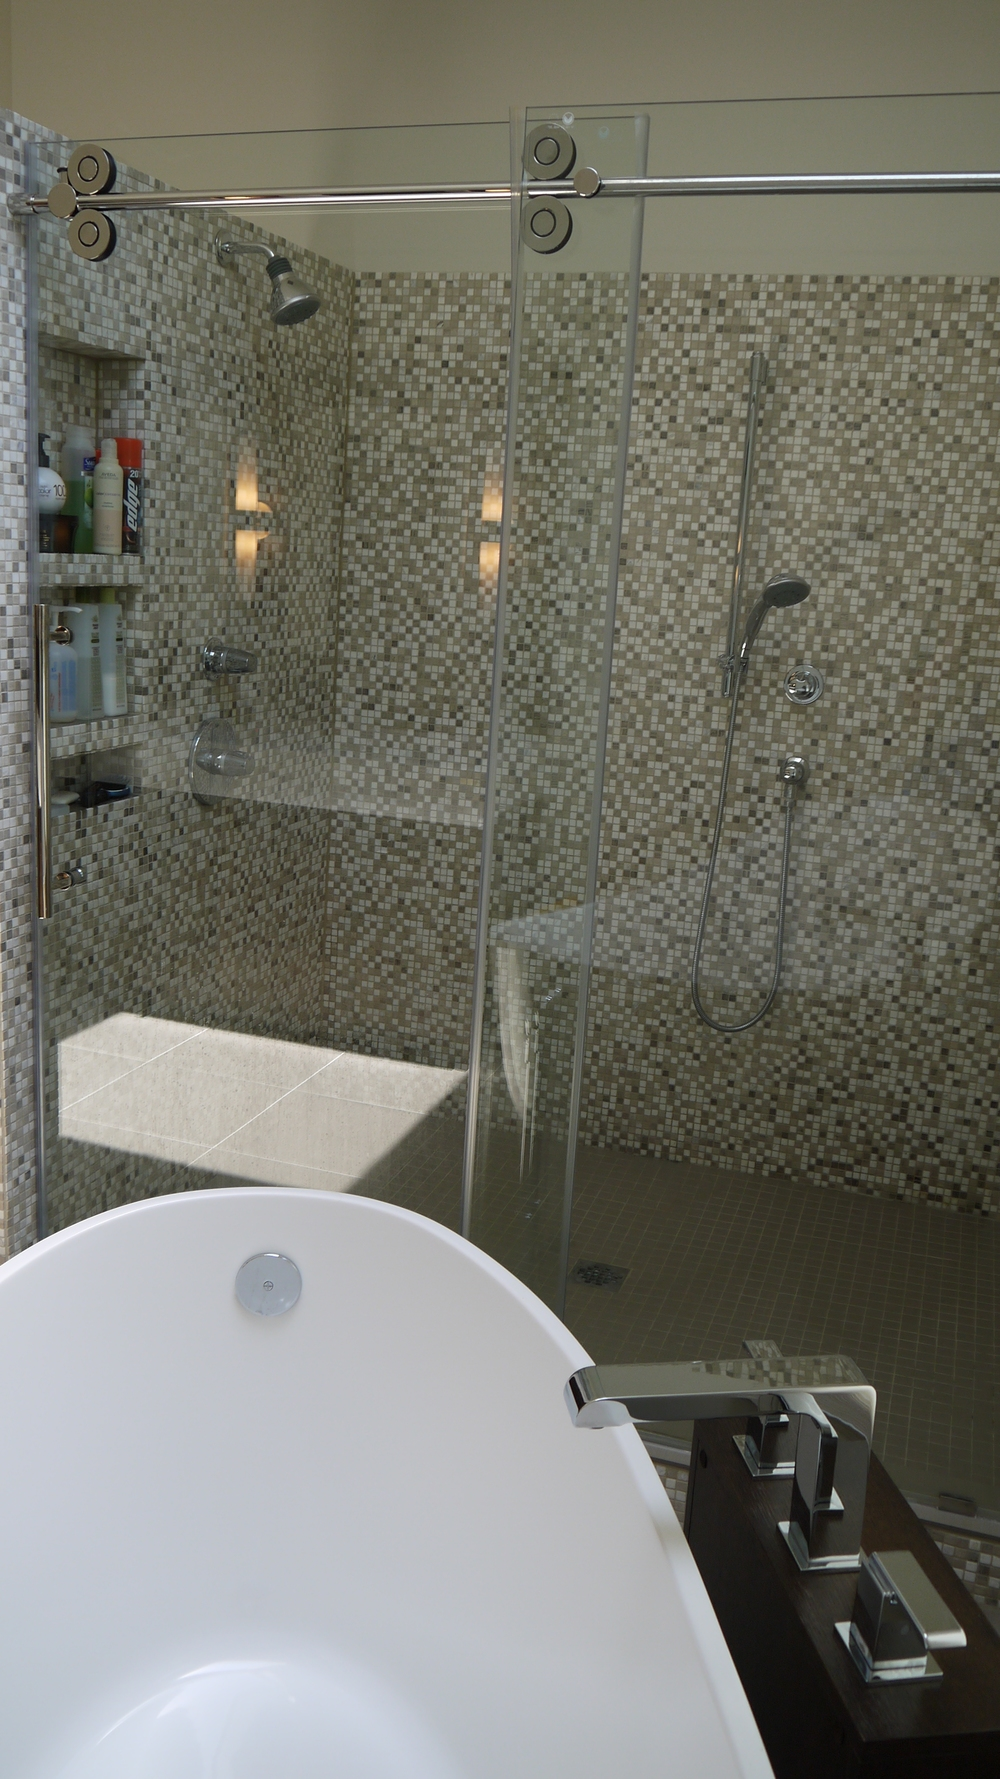 2 Point Perspective - Wilmette Residence Shower